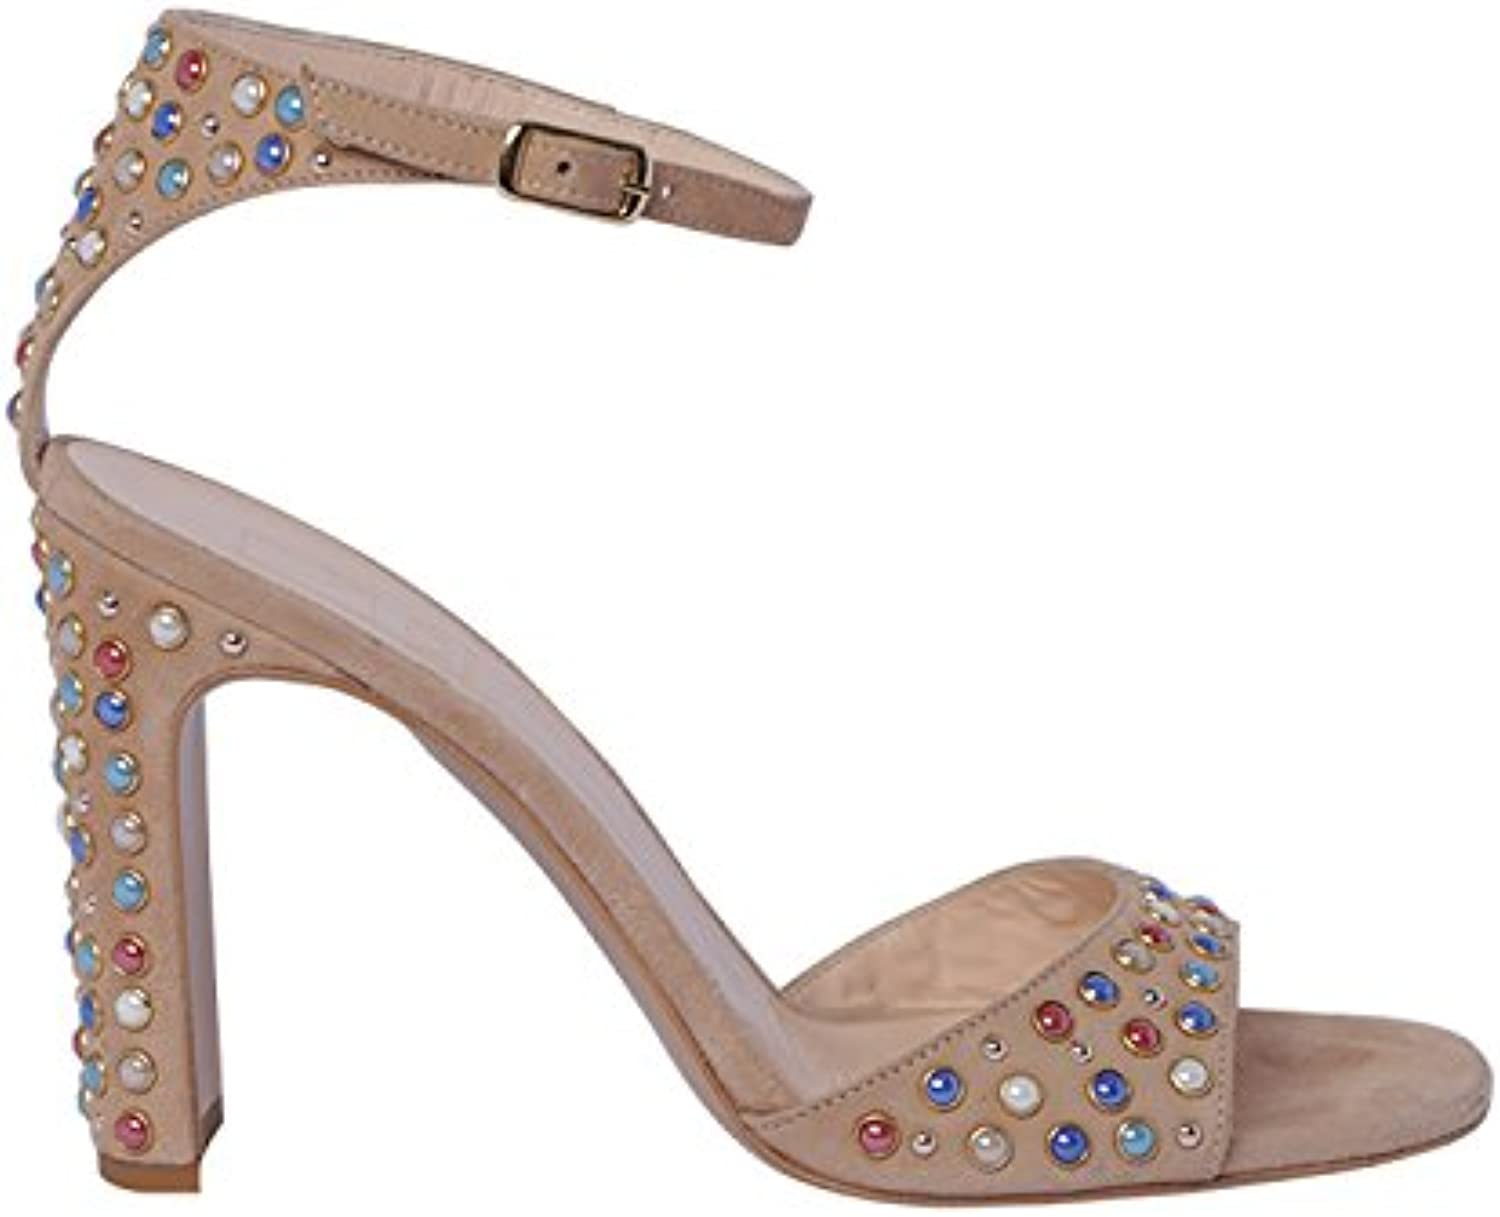 Vionic Womens 380 Hightide Pacific Leather Sandals -